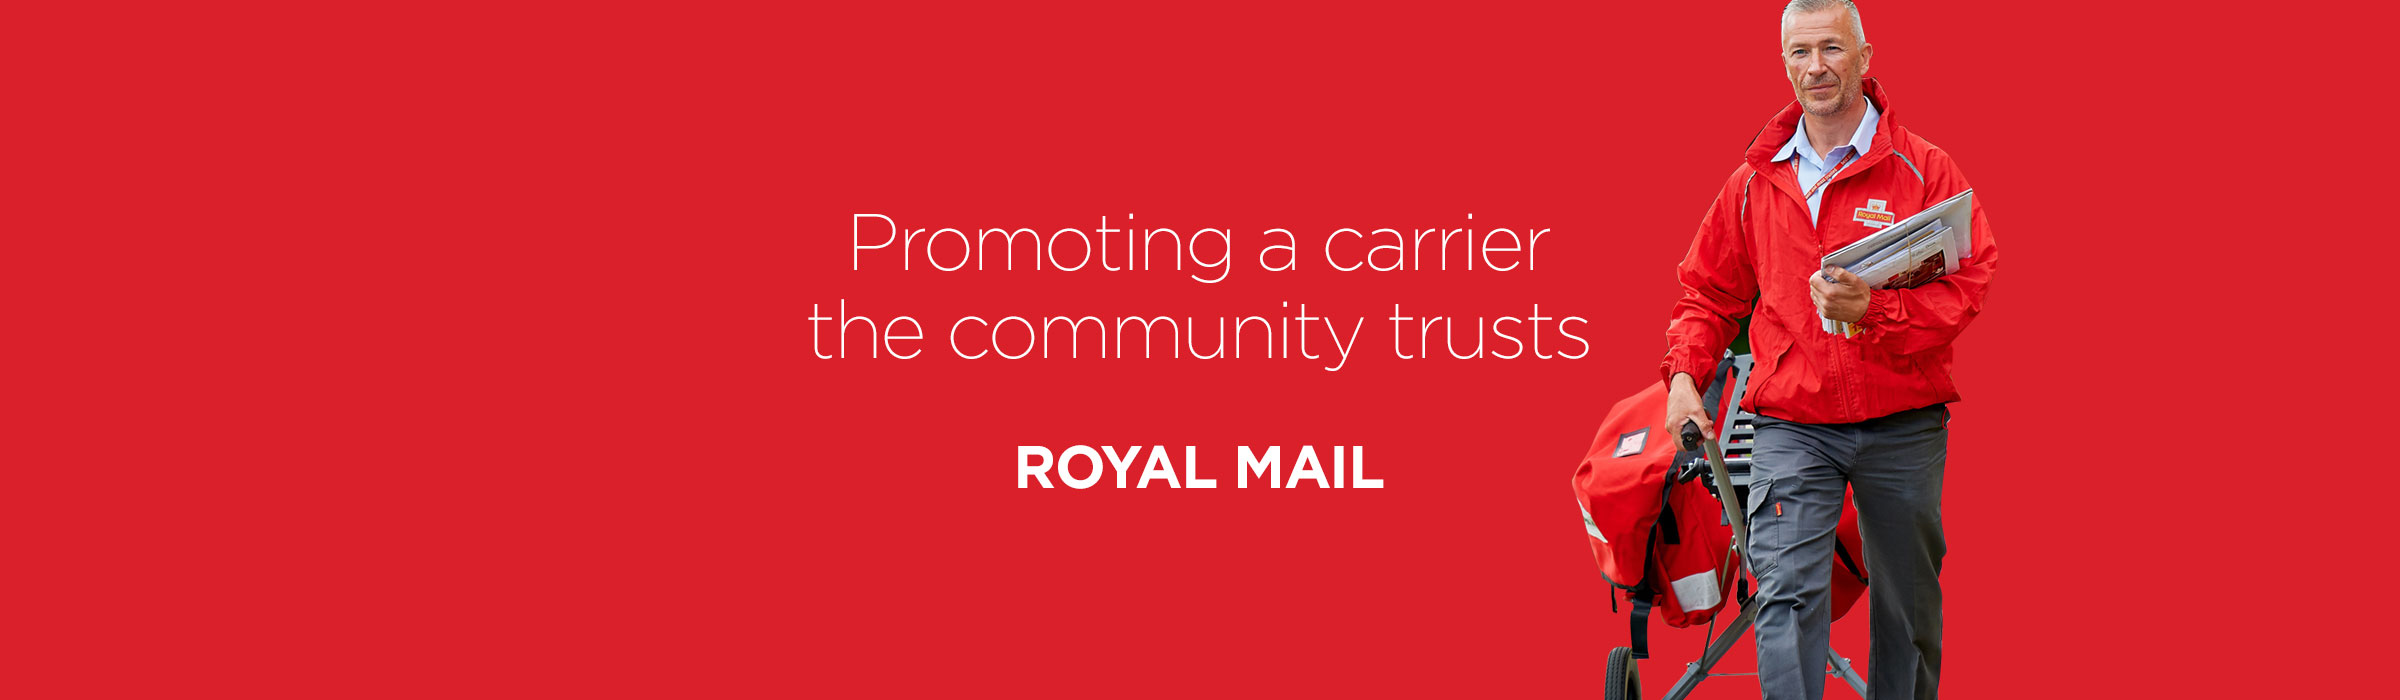 Royal Mail Q1 – Promoting a carrier the community trusts